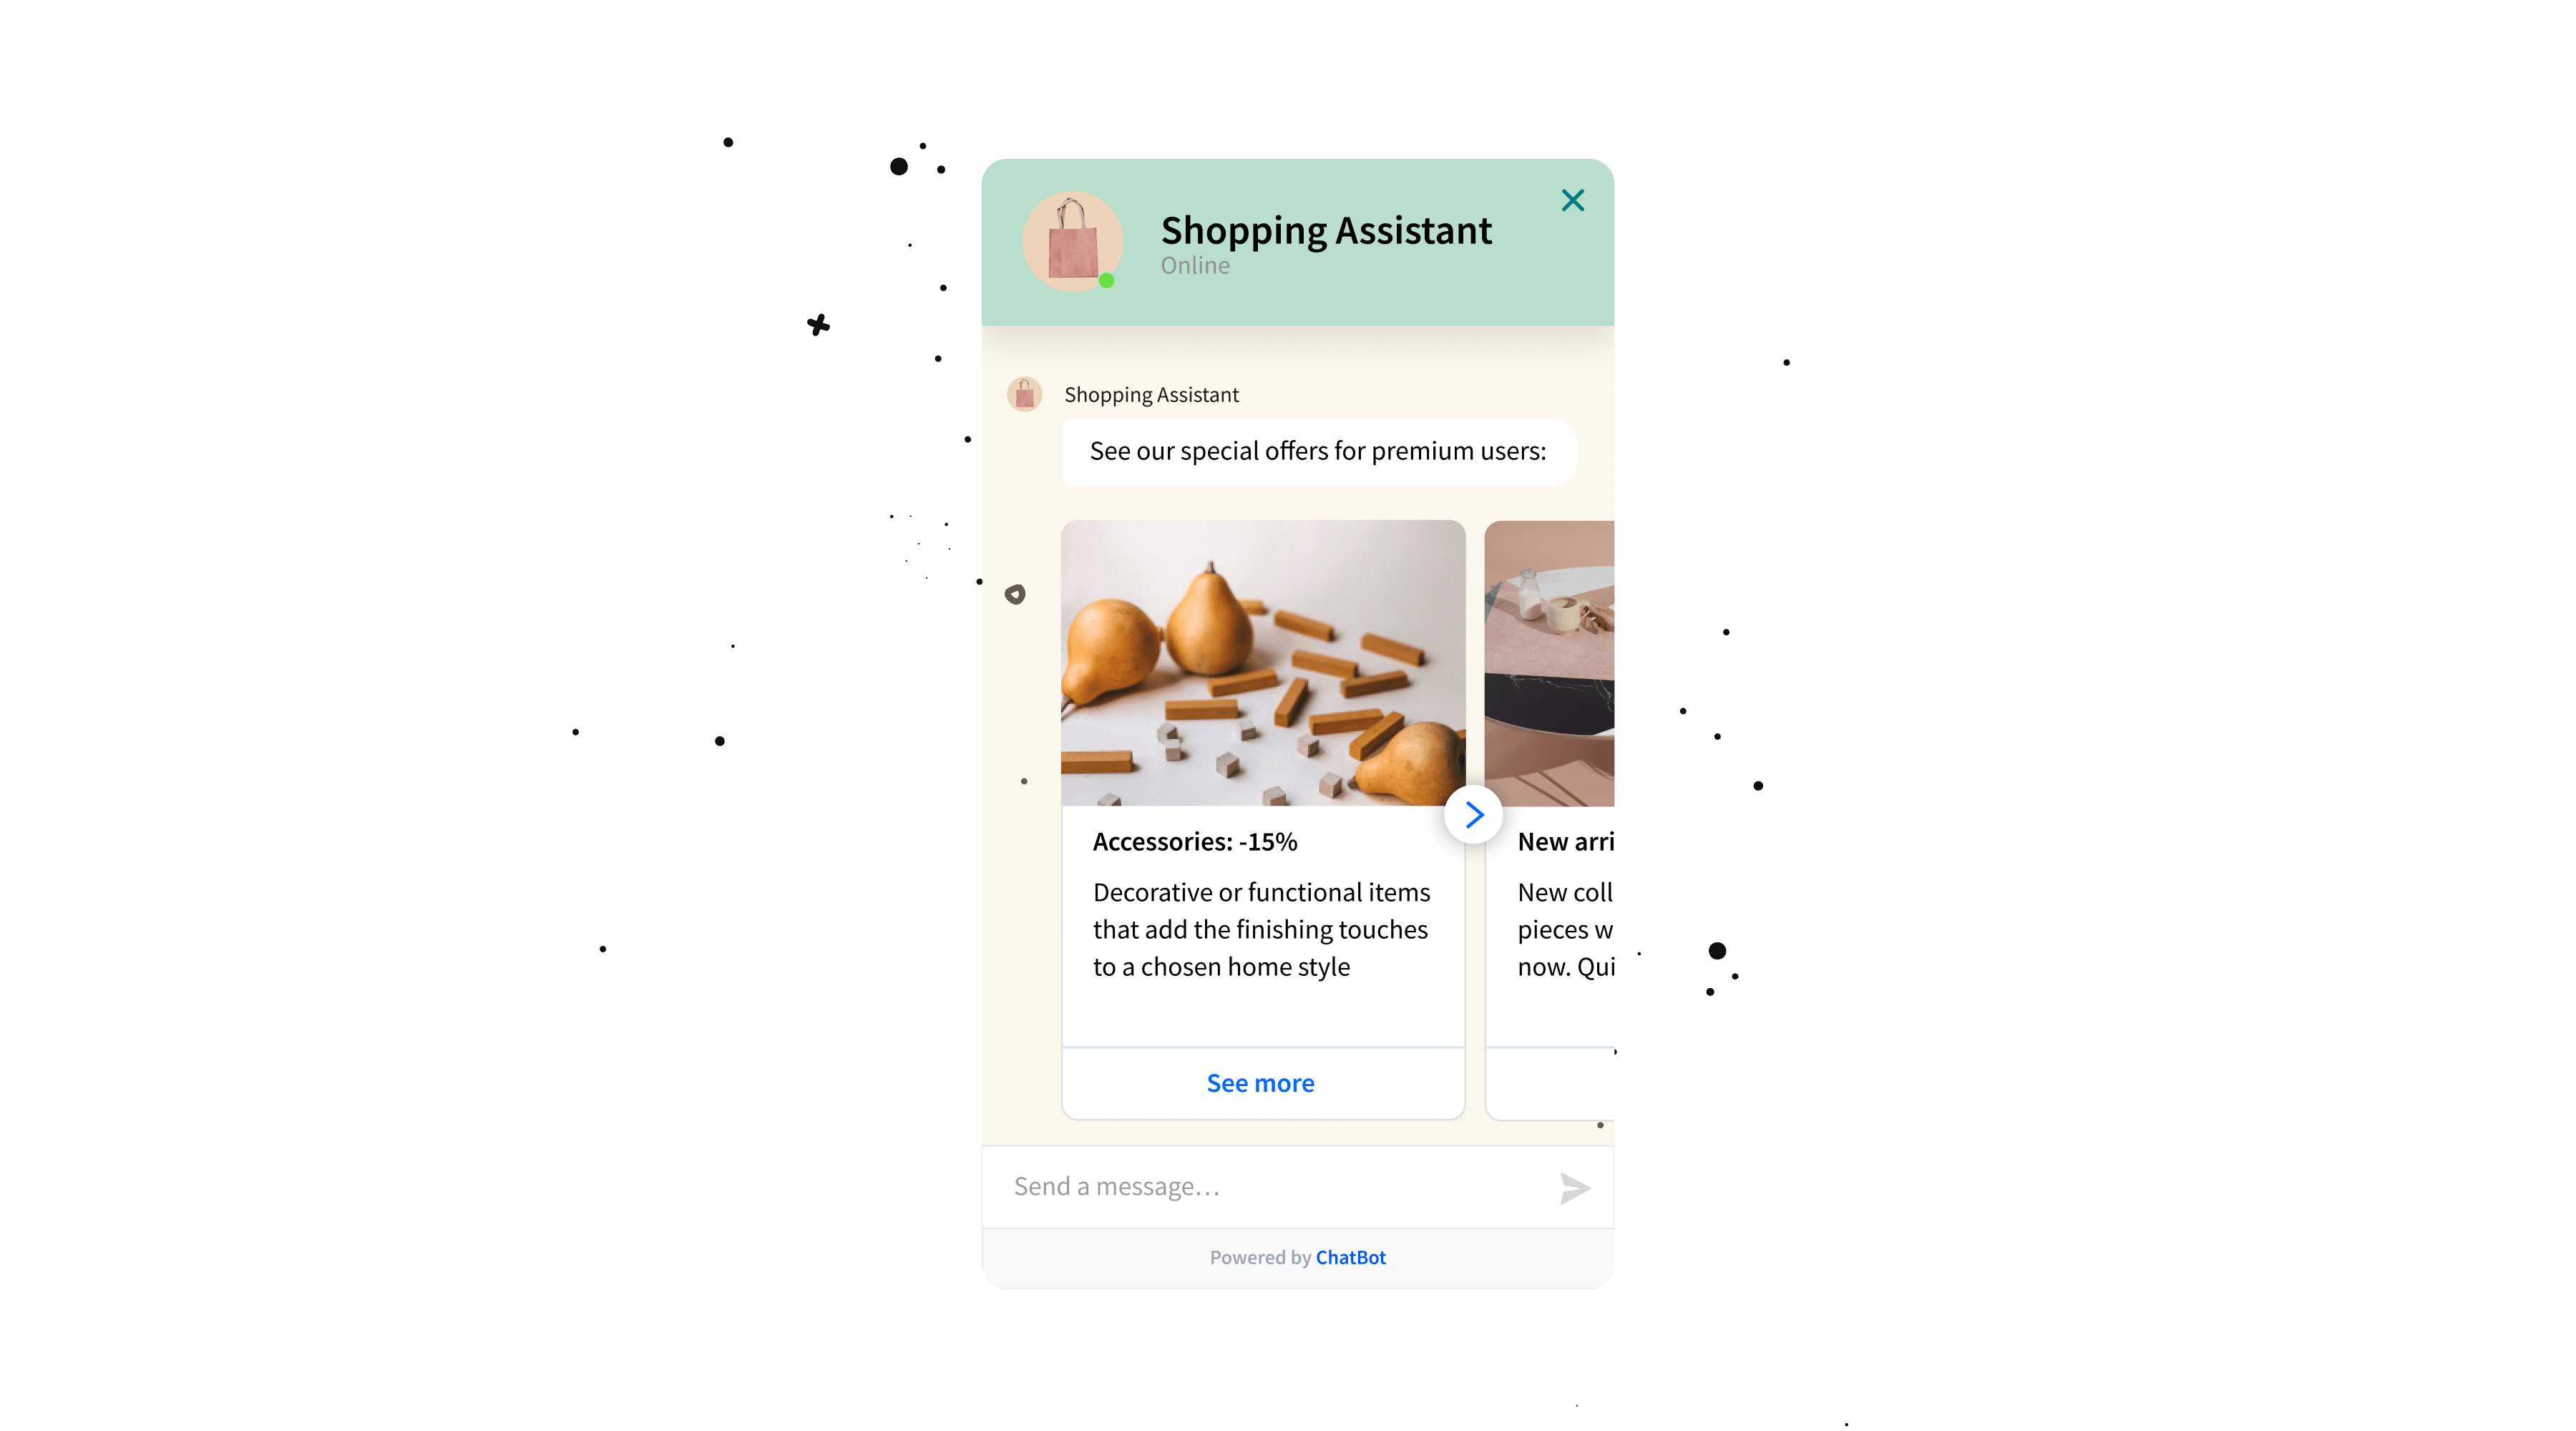 chatbot-persoanlized-recommendations